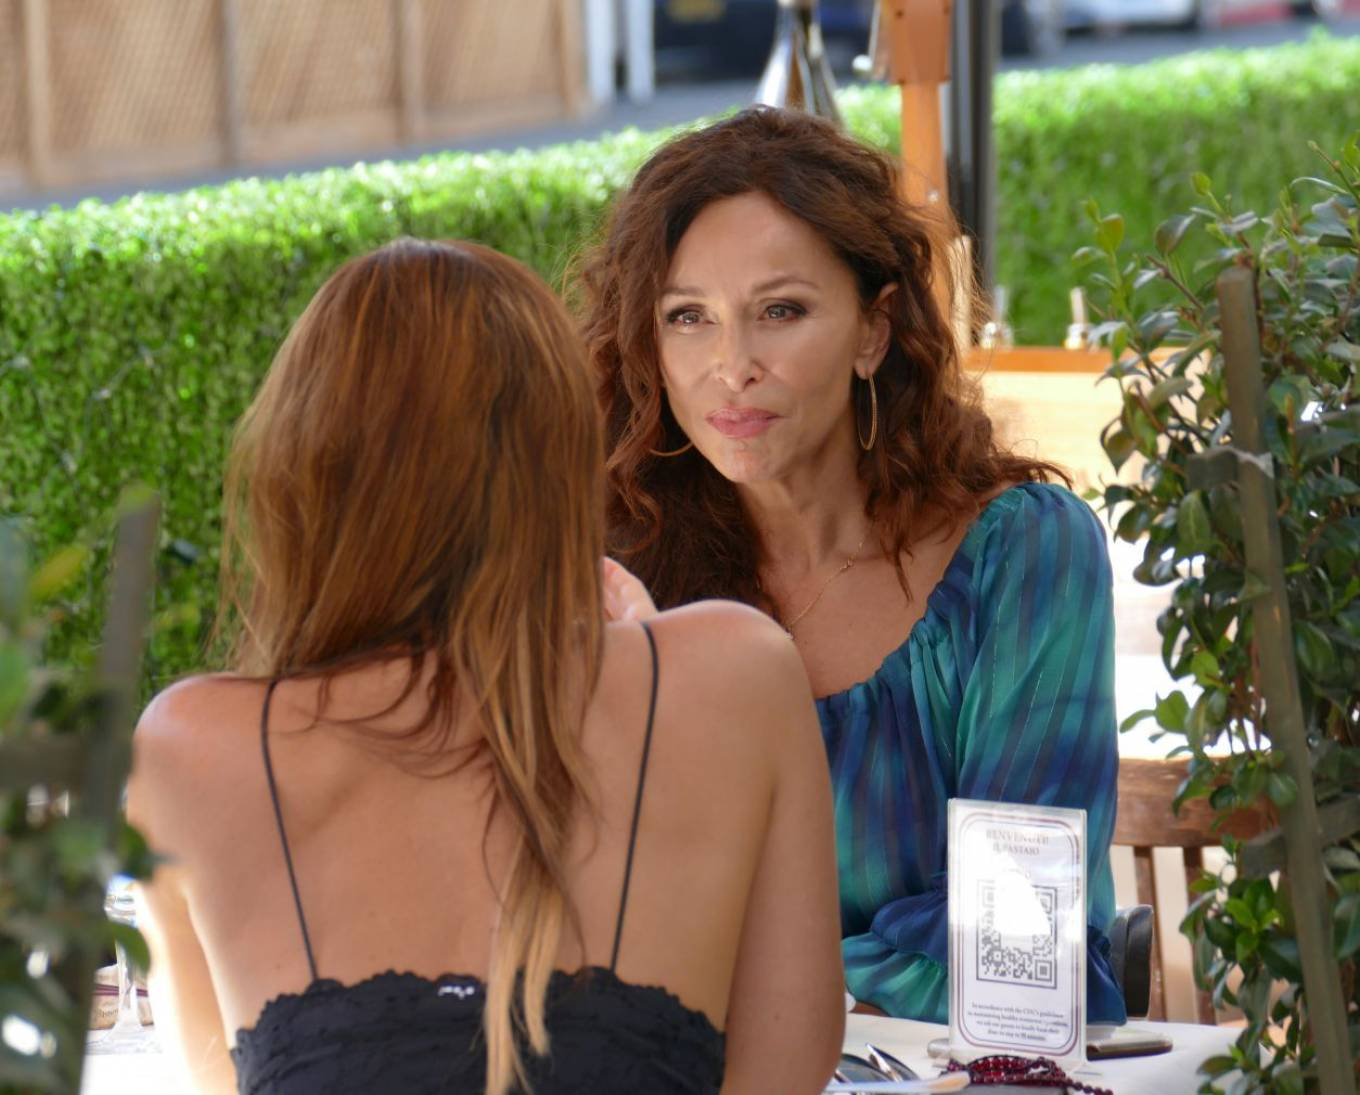 Sofia Milos 2020 : Sofia Milos – Seen at a Lunch With Female Friend-05